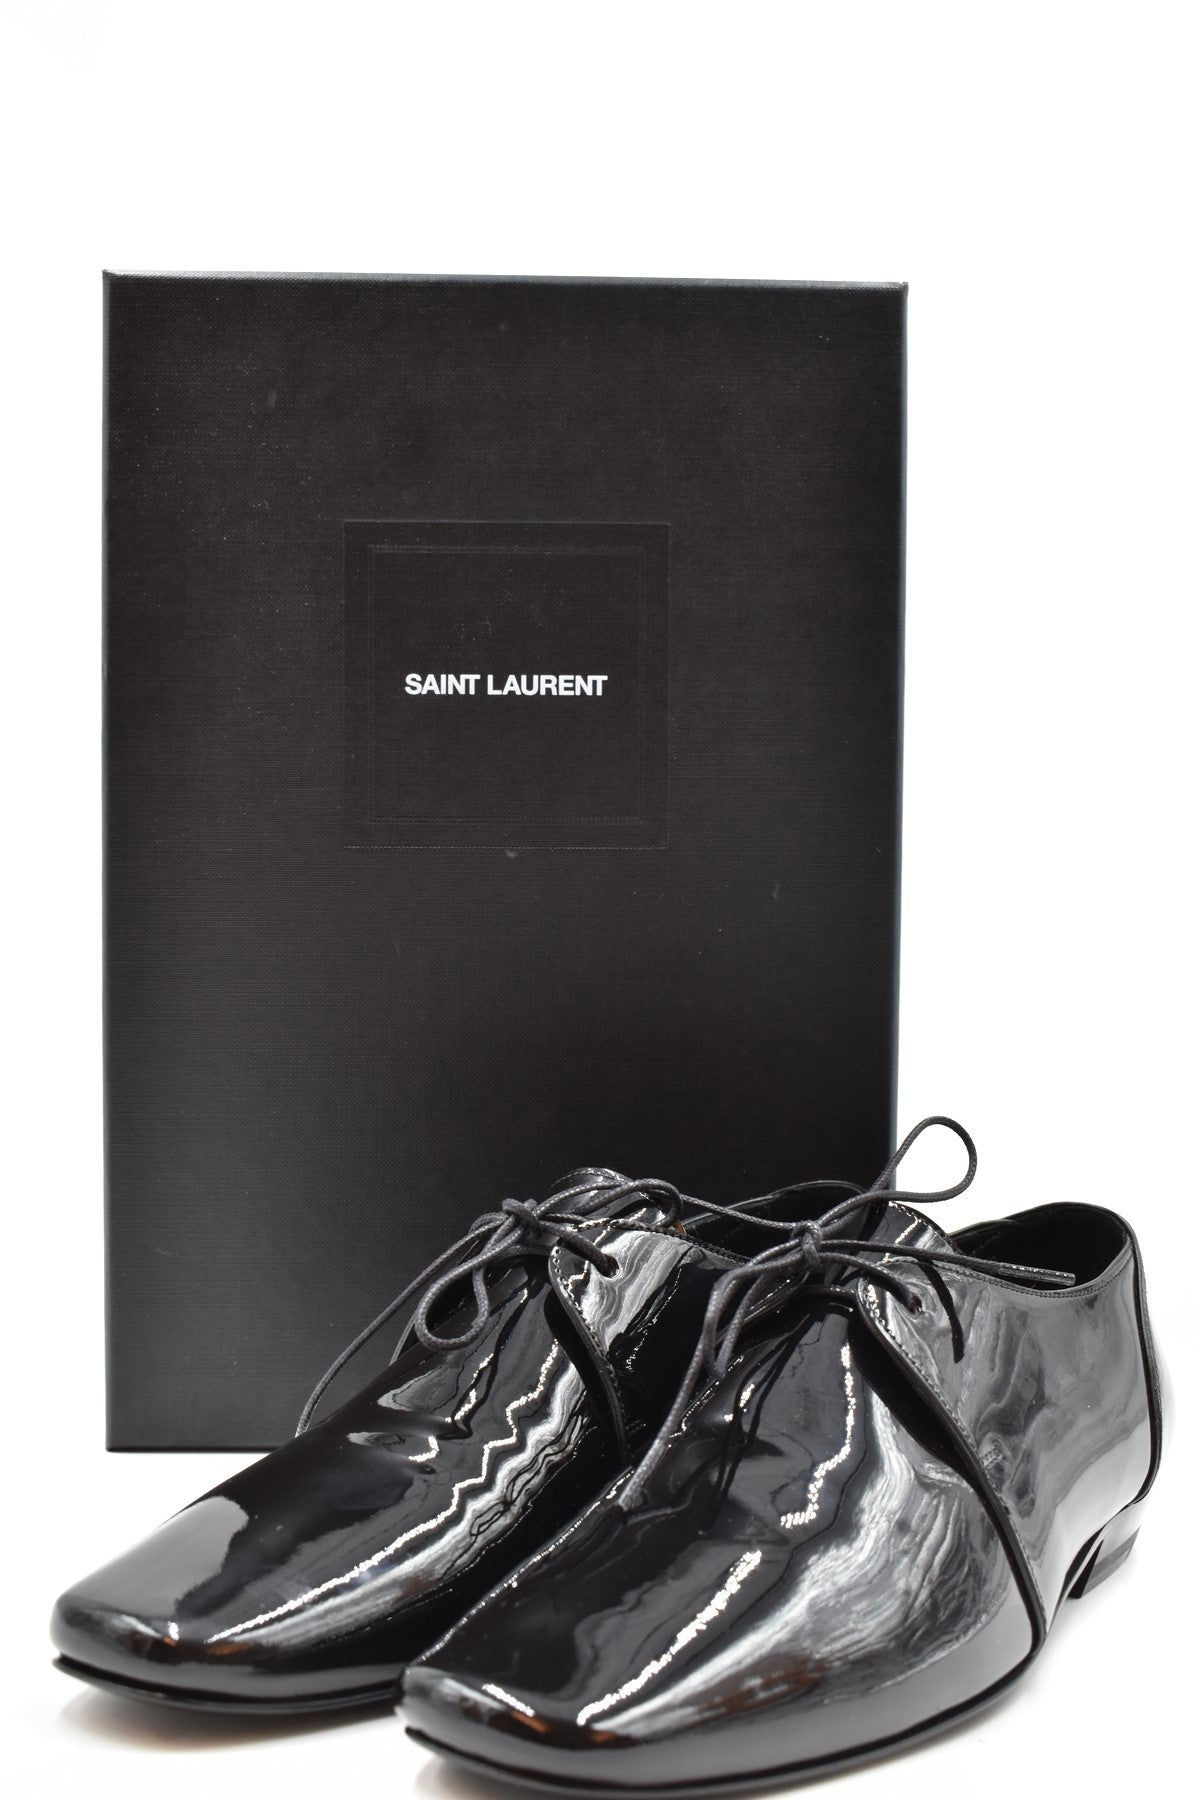 Shoes Saint Laurent-Women's Fashion - Women's Shoes - Women's Flats-Product Details Terms: New With LabelMain Color: BlackType Of Accessory: ShoesSeason: Fall / WinterMade In: ItalyGender: WomanSize: EuComposition: Dye 100%Year: 2020Manufacturer Part Number: I53S90421517-Keyomi-Sook